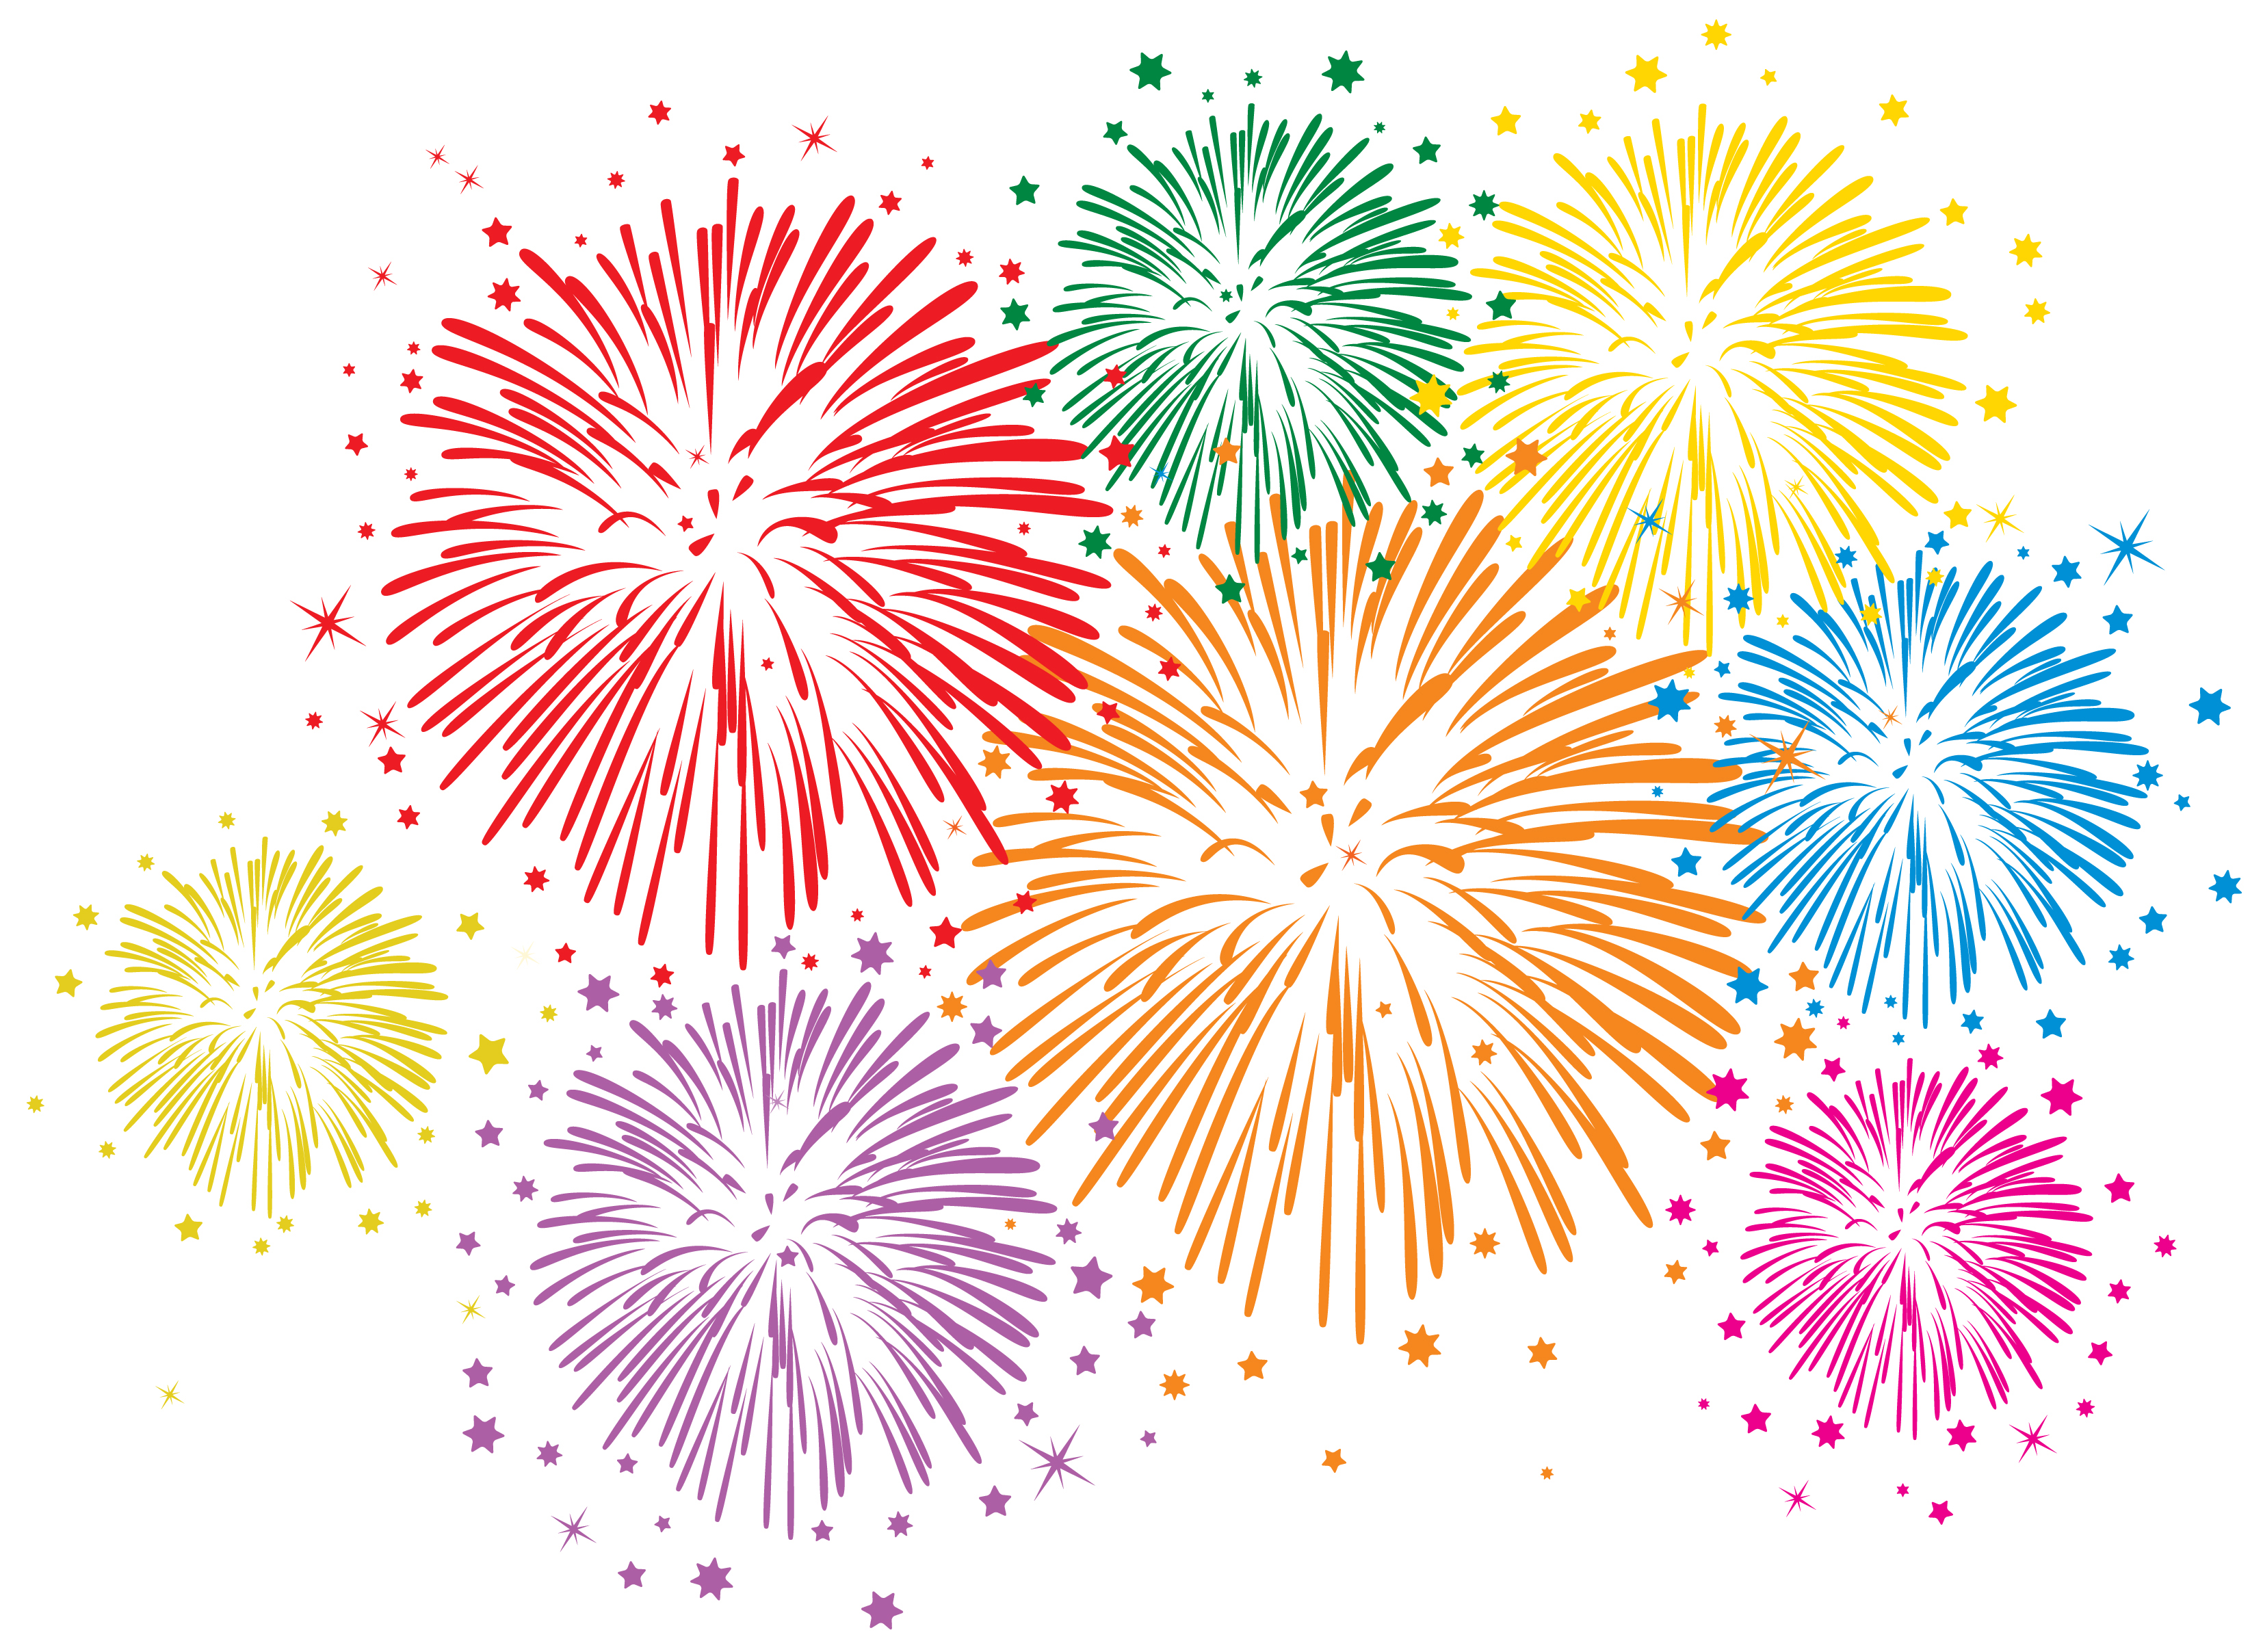 Animated PNG HD Fireworks - 129193